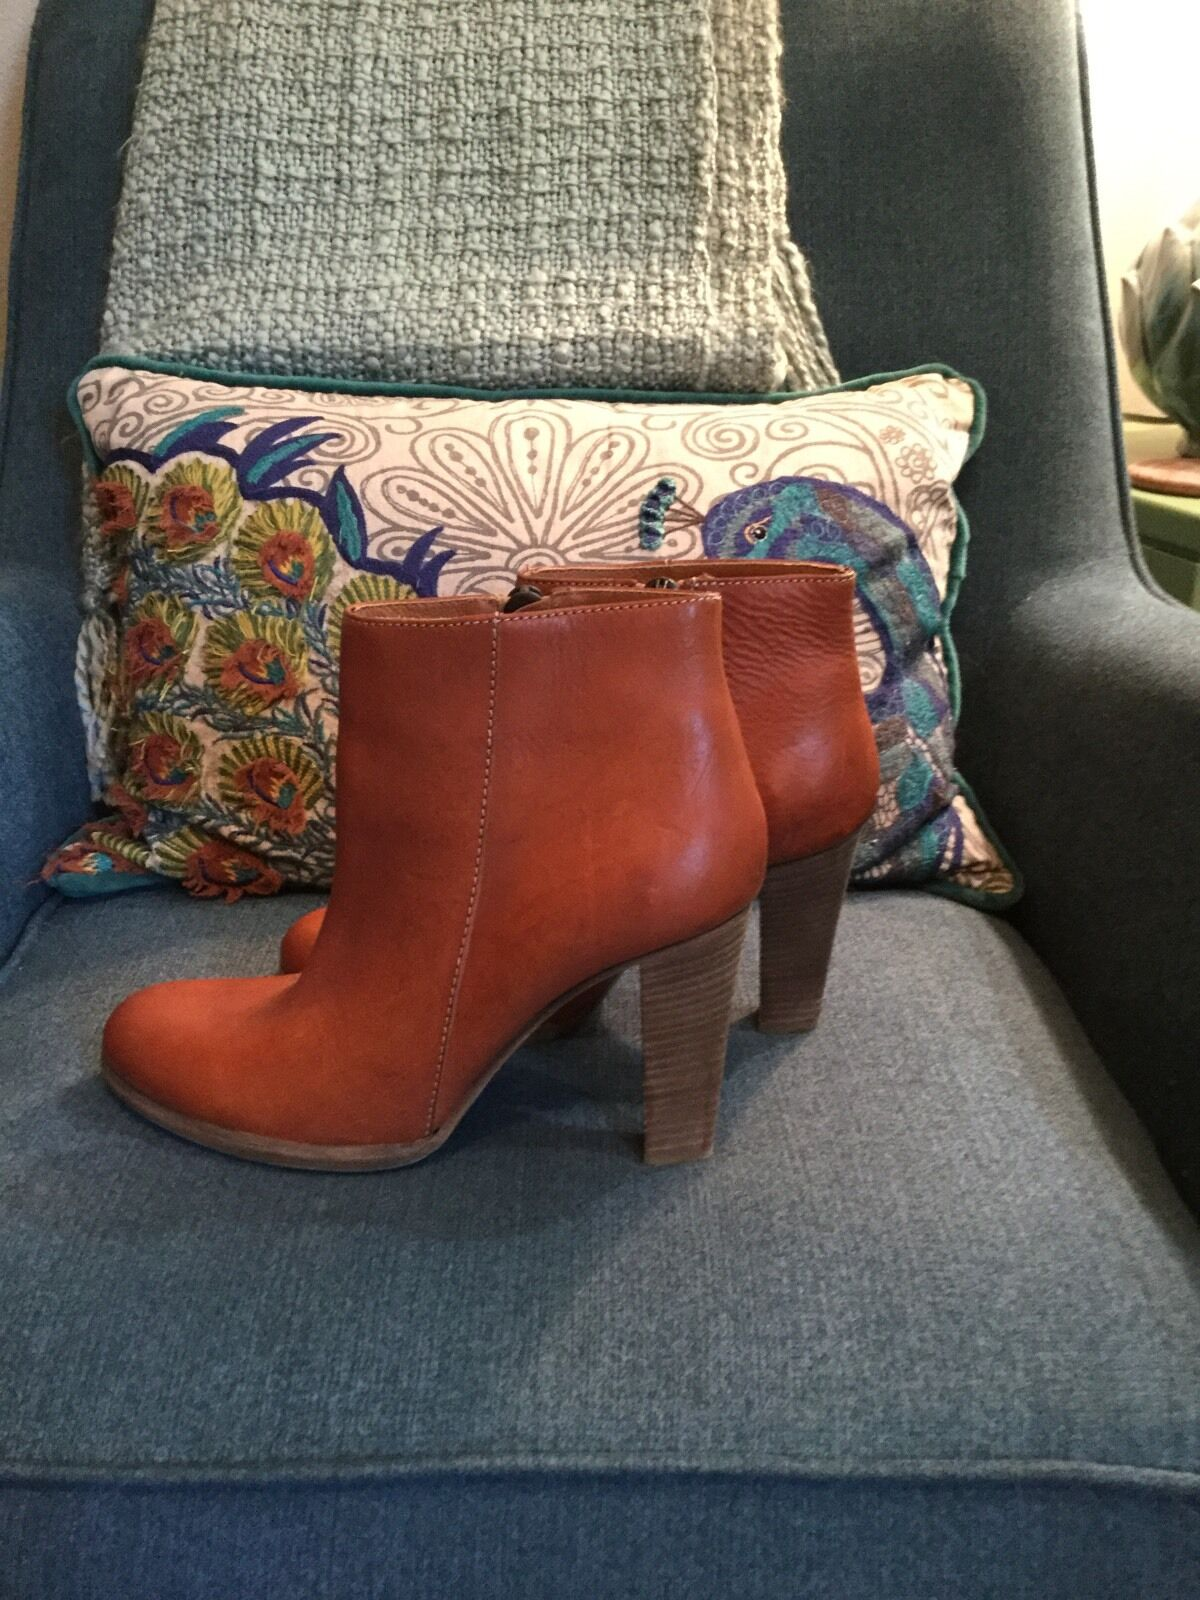 Madewell 1937 Stiefel Braun Rust Leder 9.5 B Mail Stacked Heel Ankle Bootie Euc